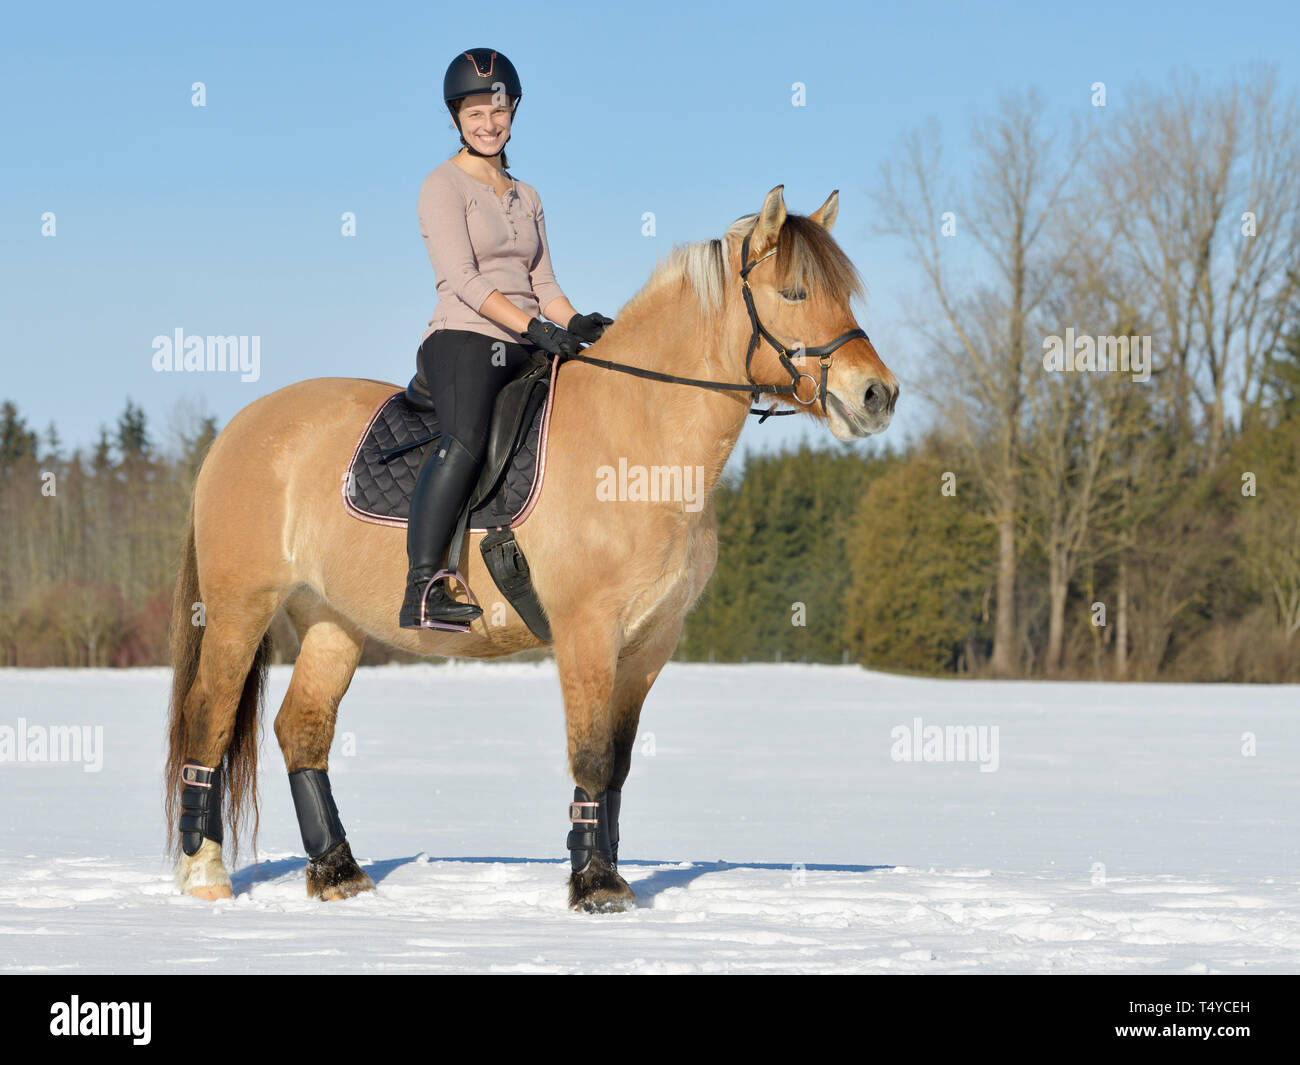 Rider On Back Of A Norwegian Fjord Horse Riding In Snow Outfit In Black And Rose Gold Stock Photo Alamy